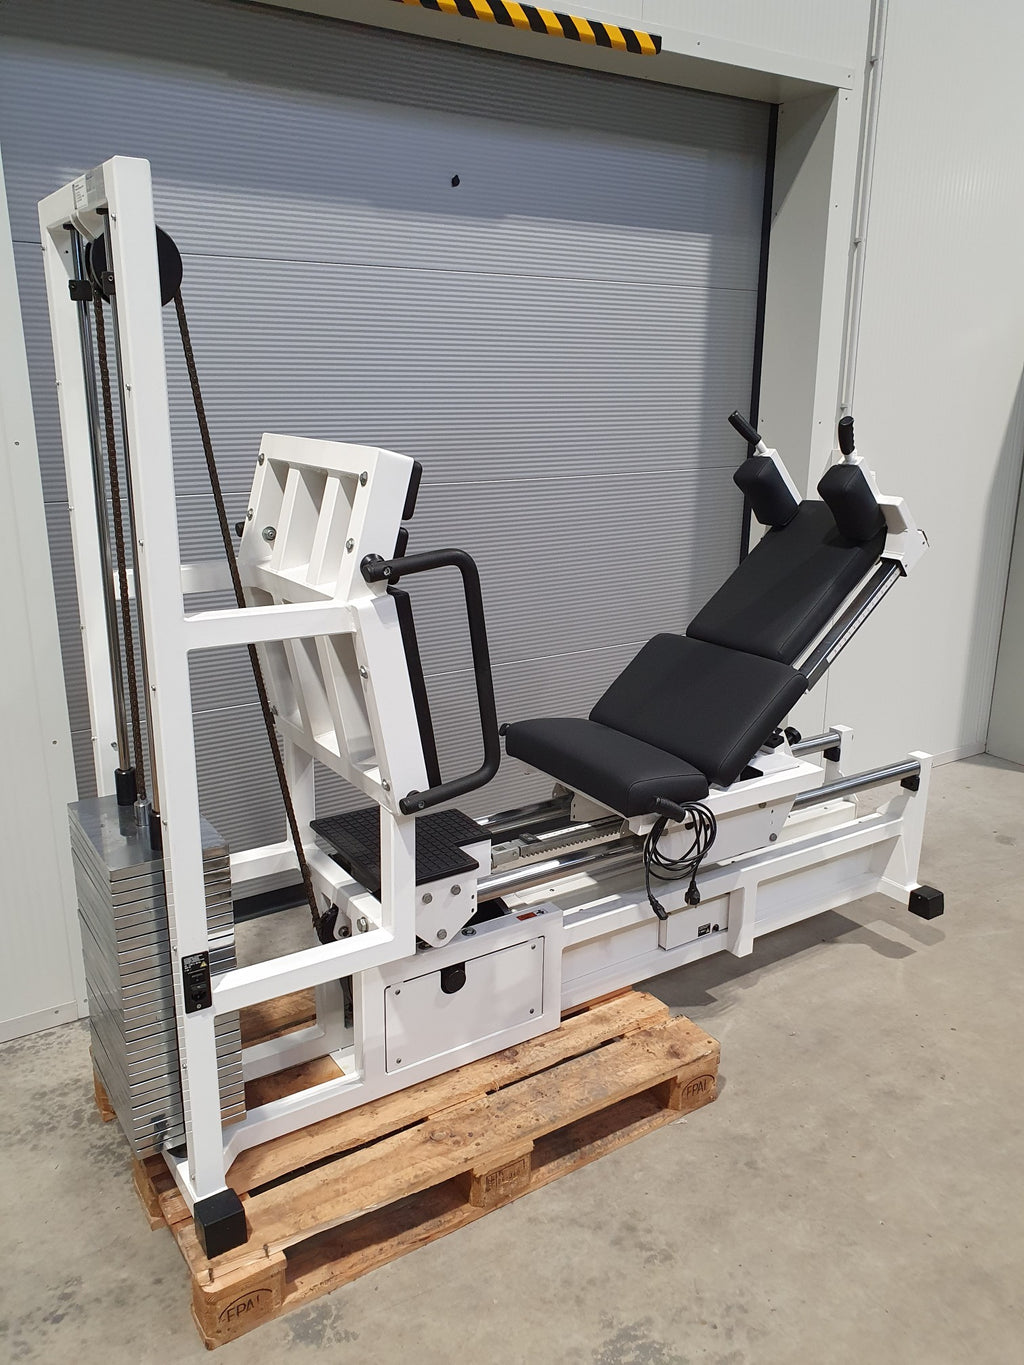 TECHNOGYM ISOTONIC LINE Super Executive Bein Presse Leg Press Fitness Studio Gym